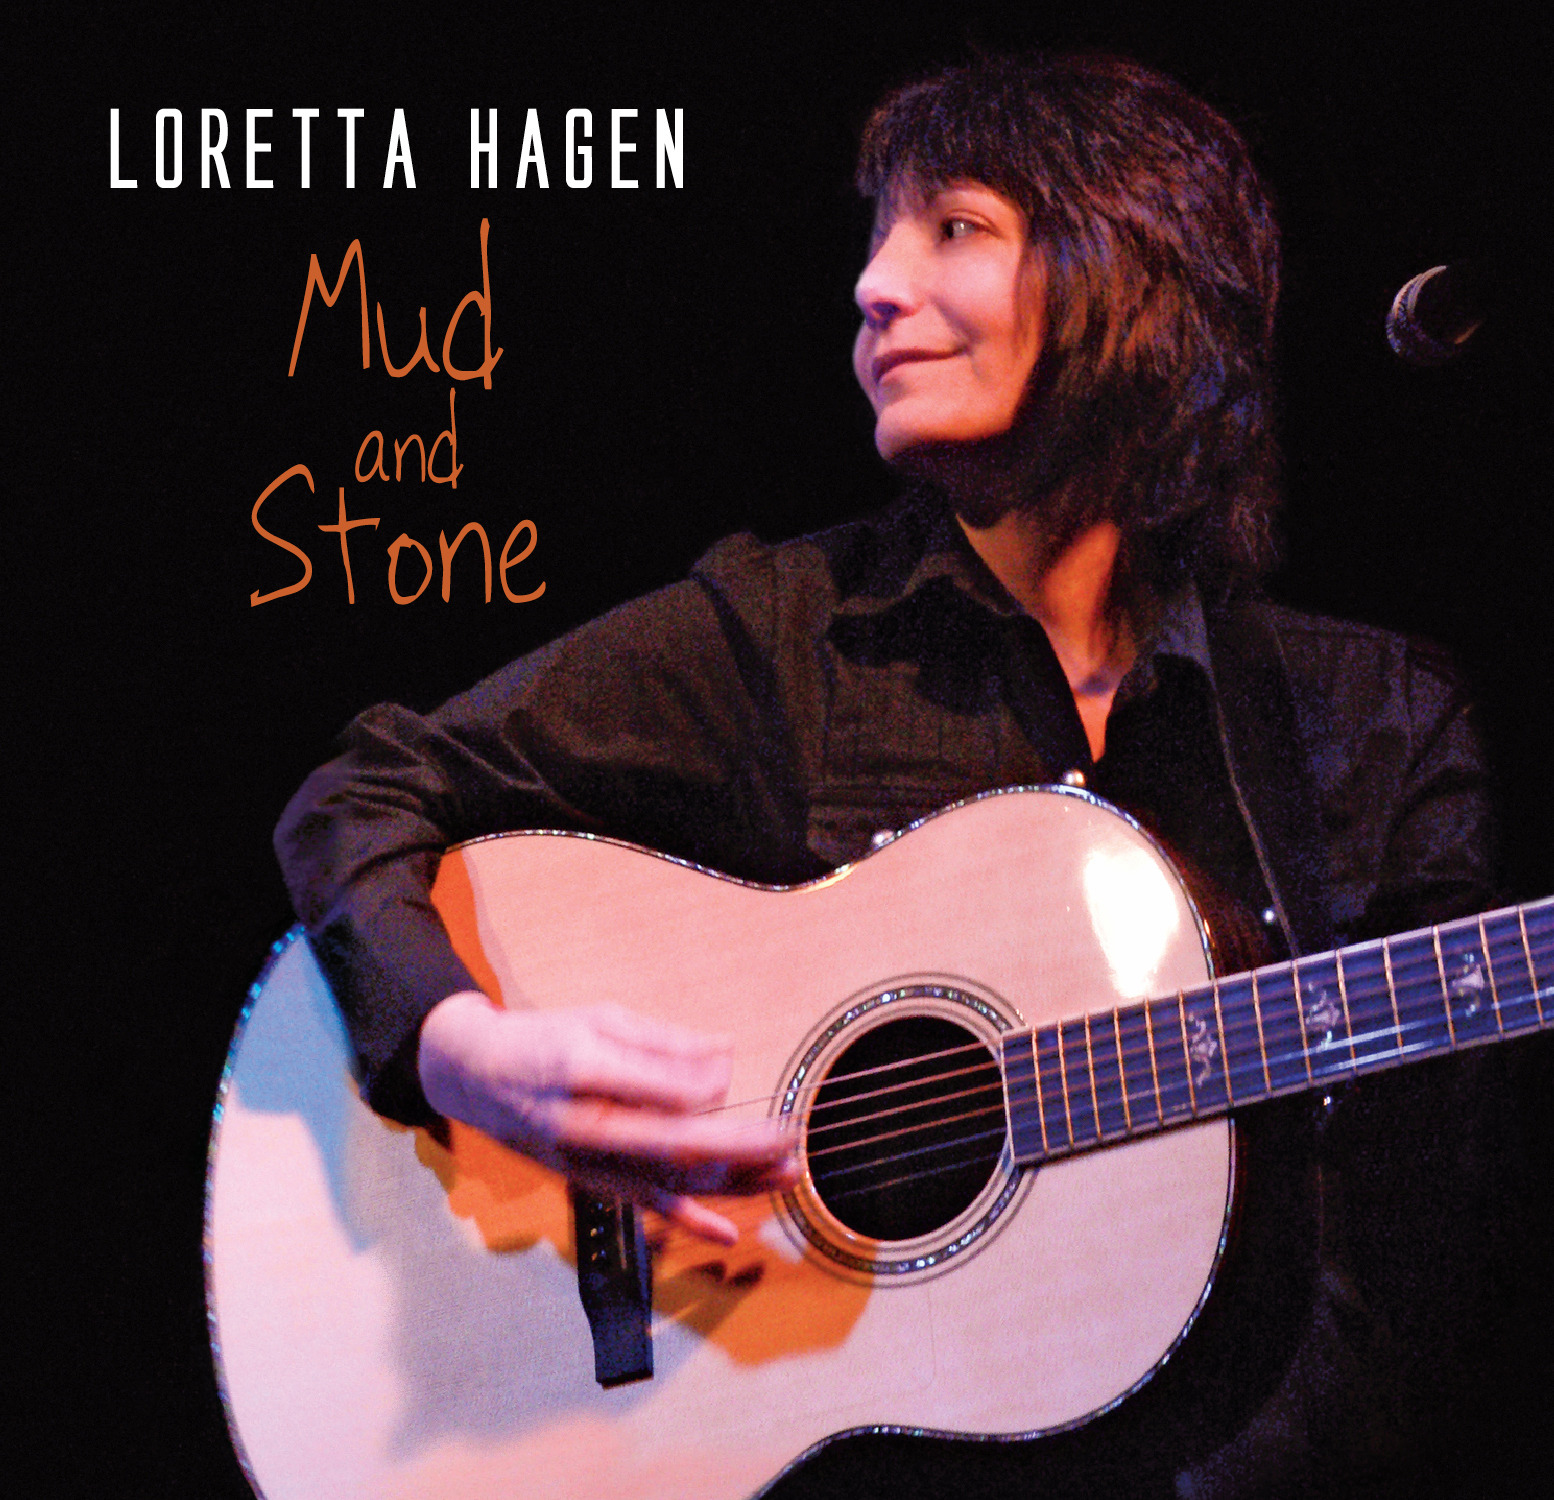 0a67e9524effeecc4287_Loretta_Hagen_Mud_and_Stone_CD.jpg